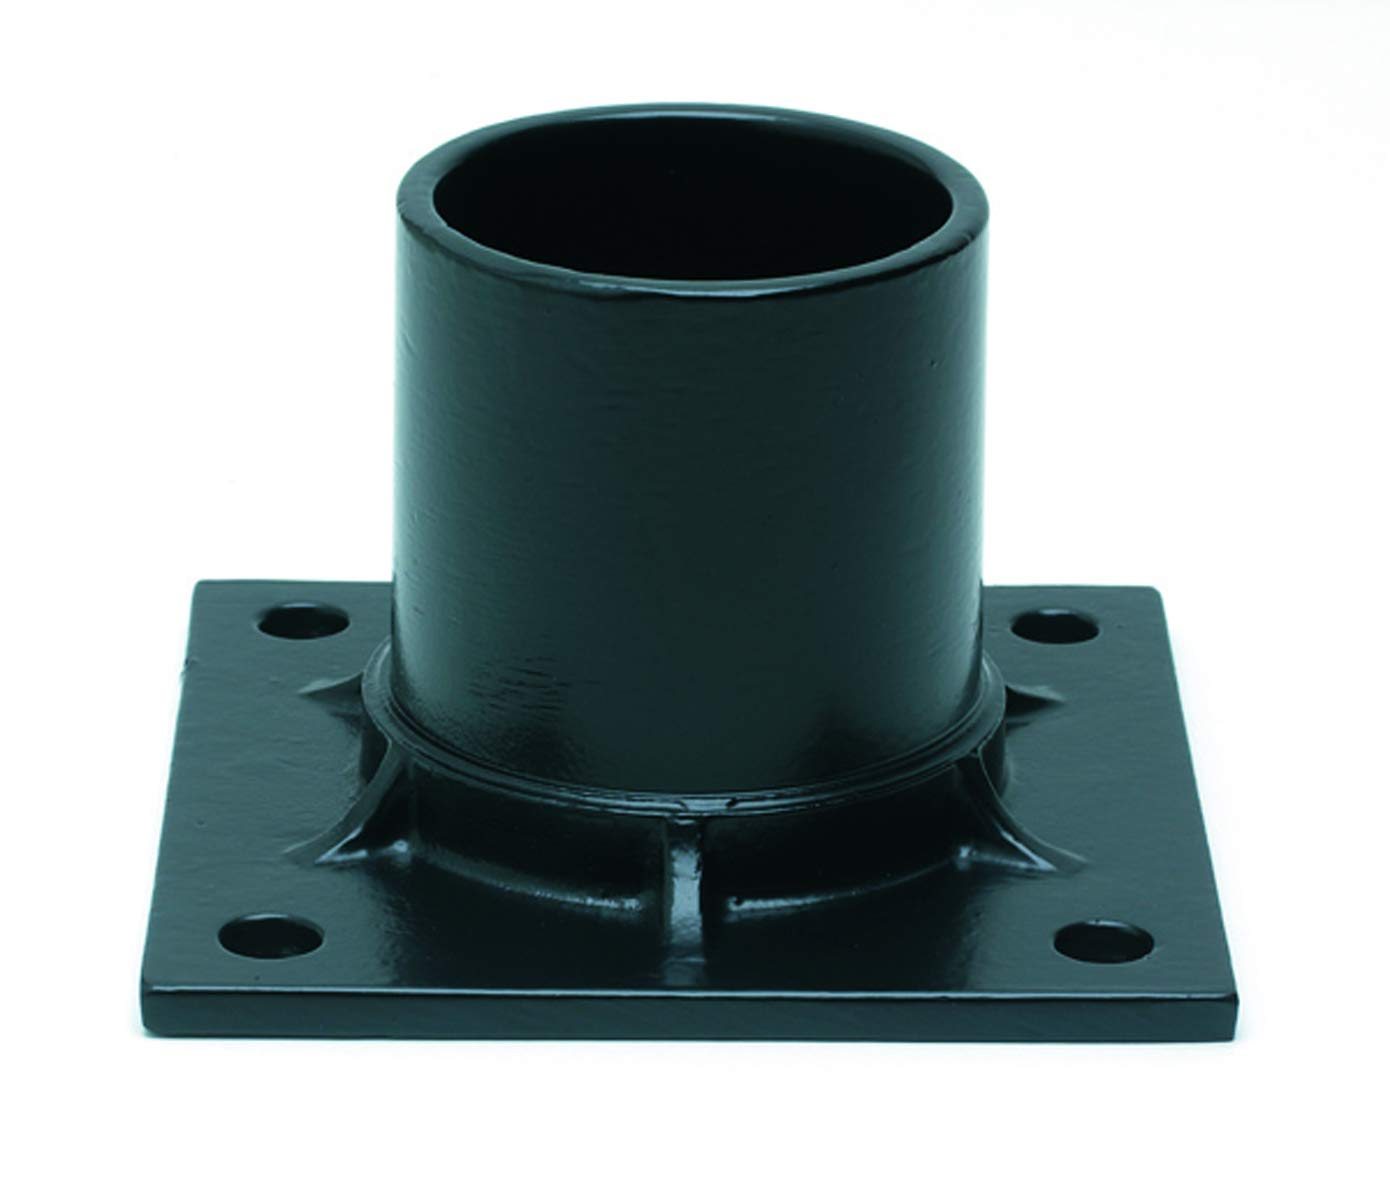 Solo Lights Black Aluminum Pier Mount Adapter Base for 3'' Diameter Stub Post. Mounting Hardware Included by Solo Lights